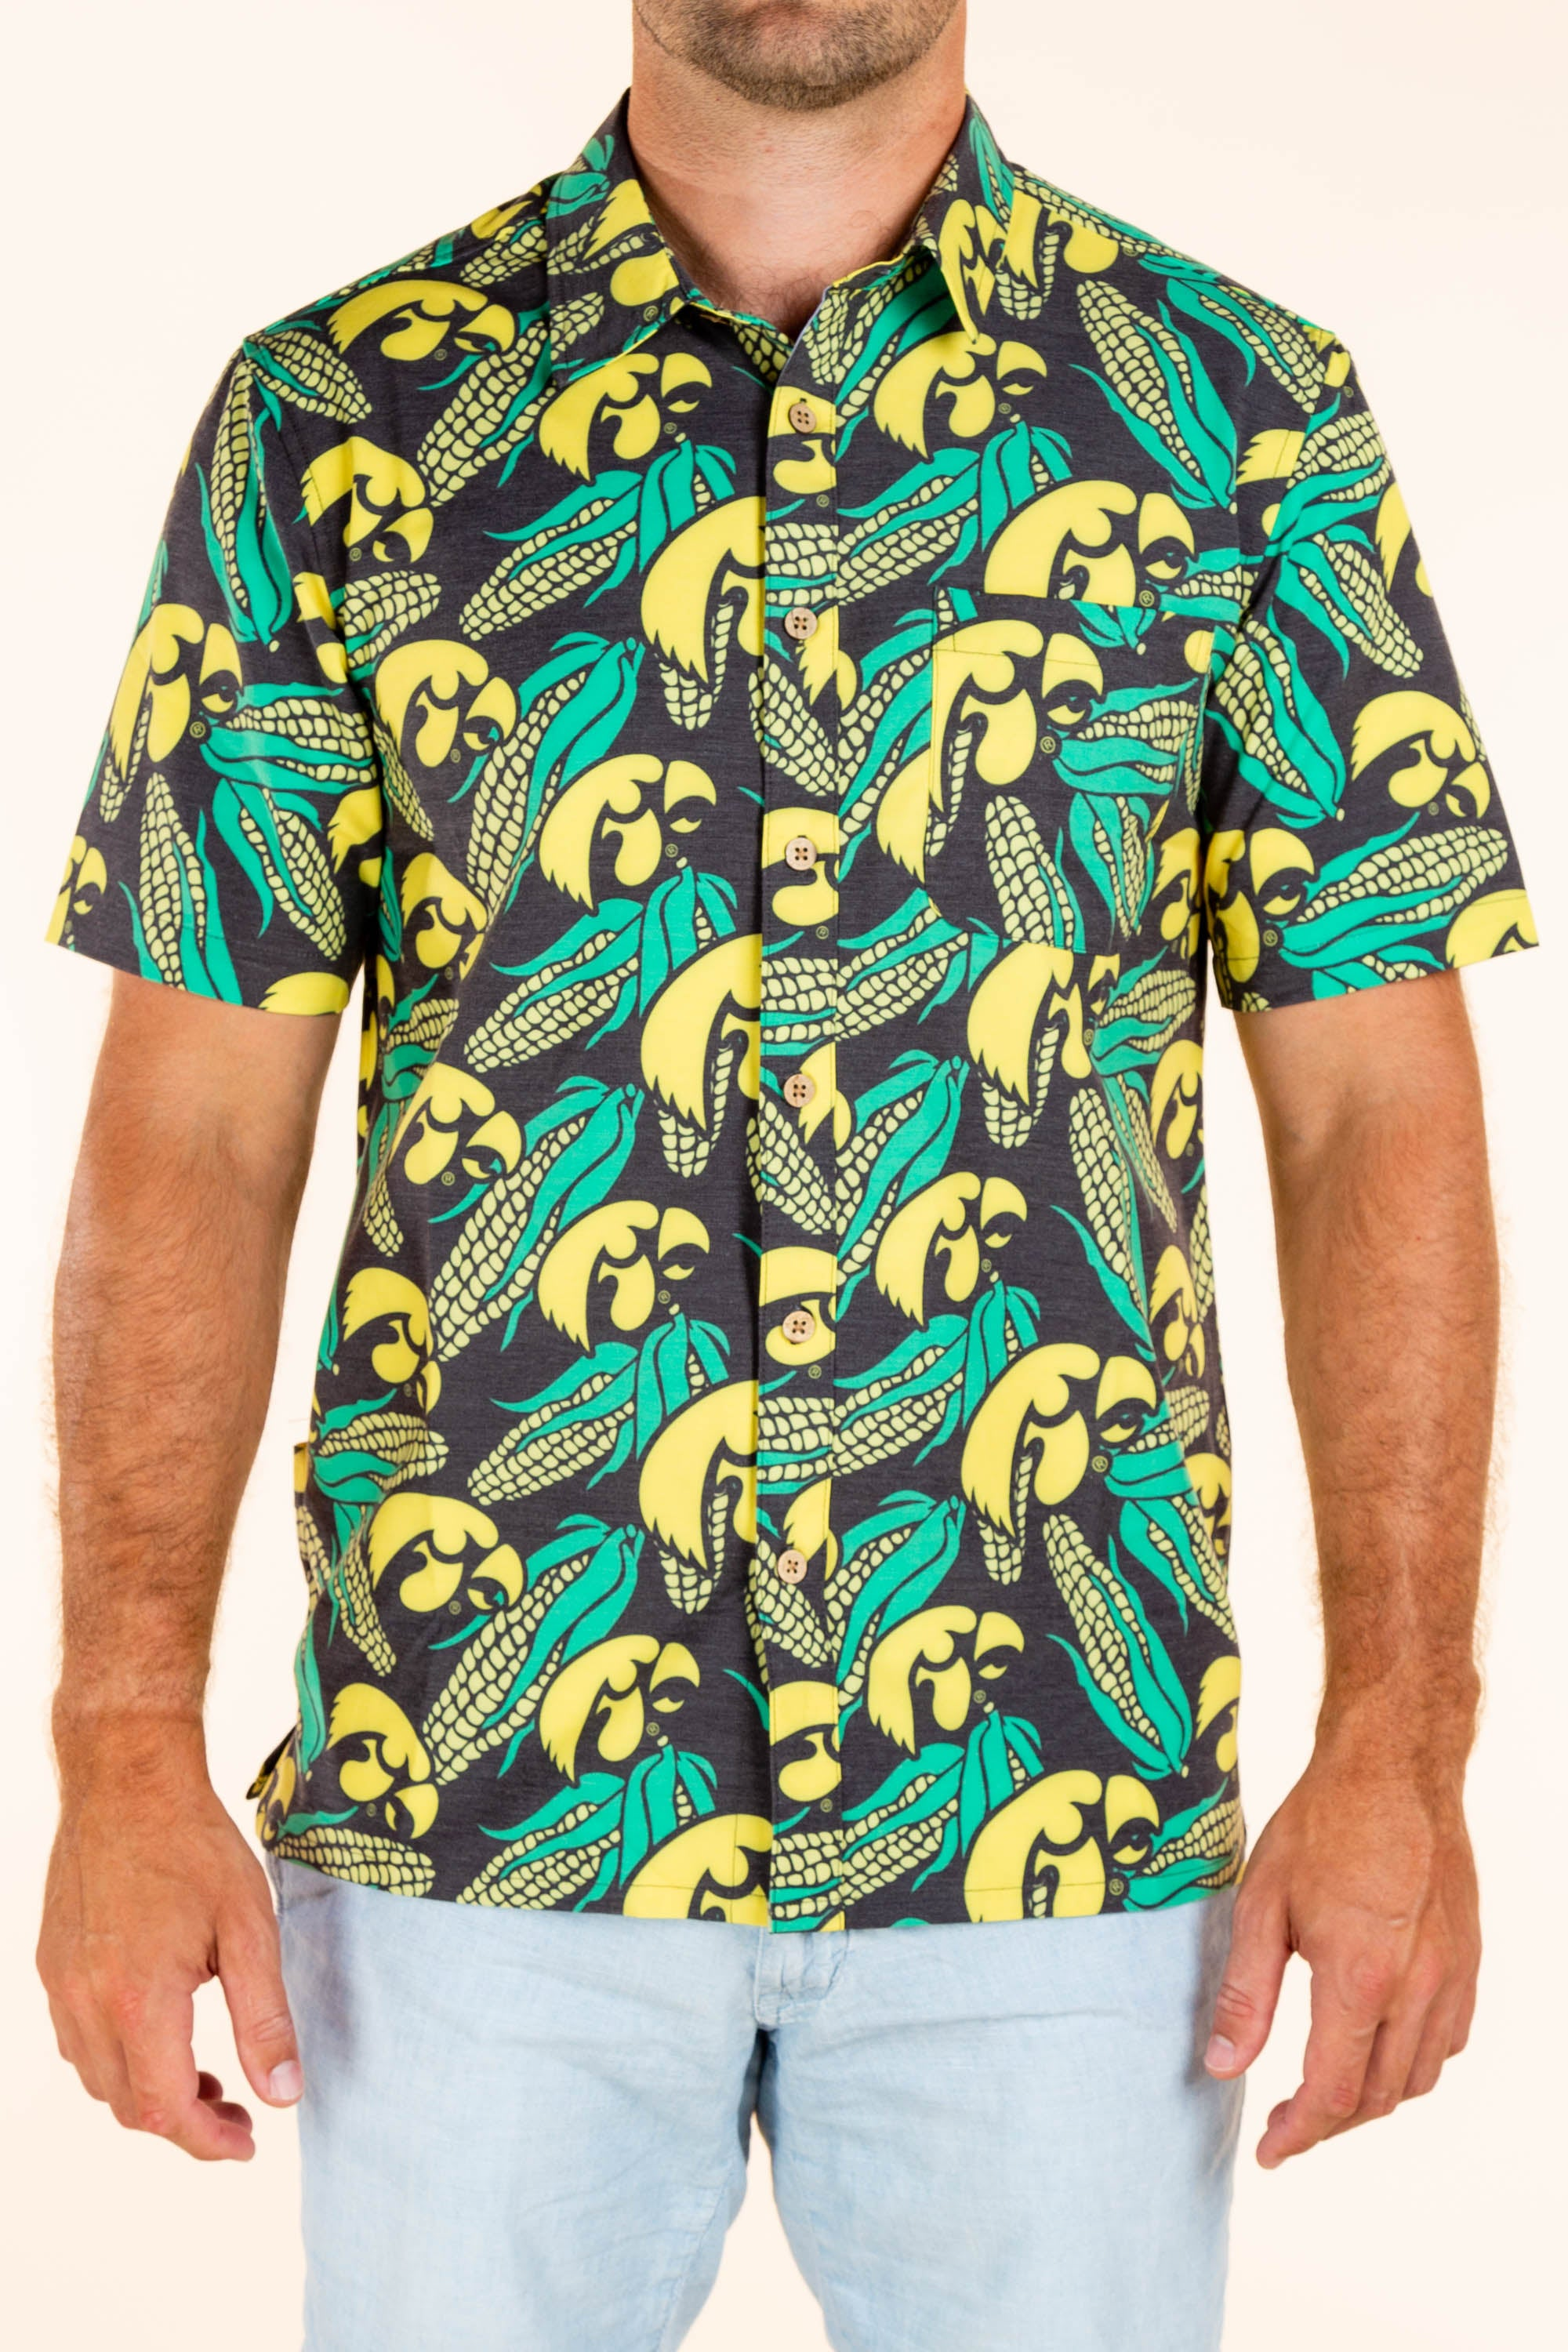 University of Iowa Party Shirt